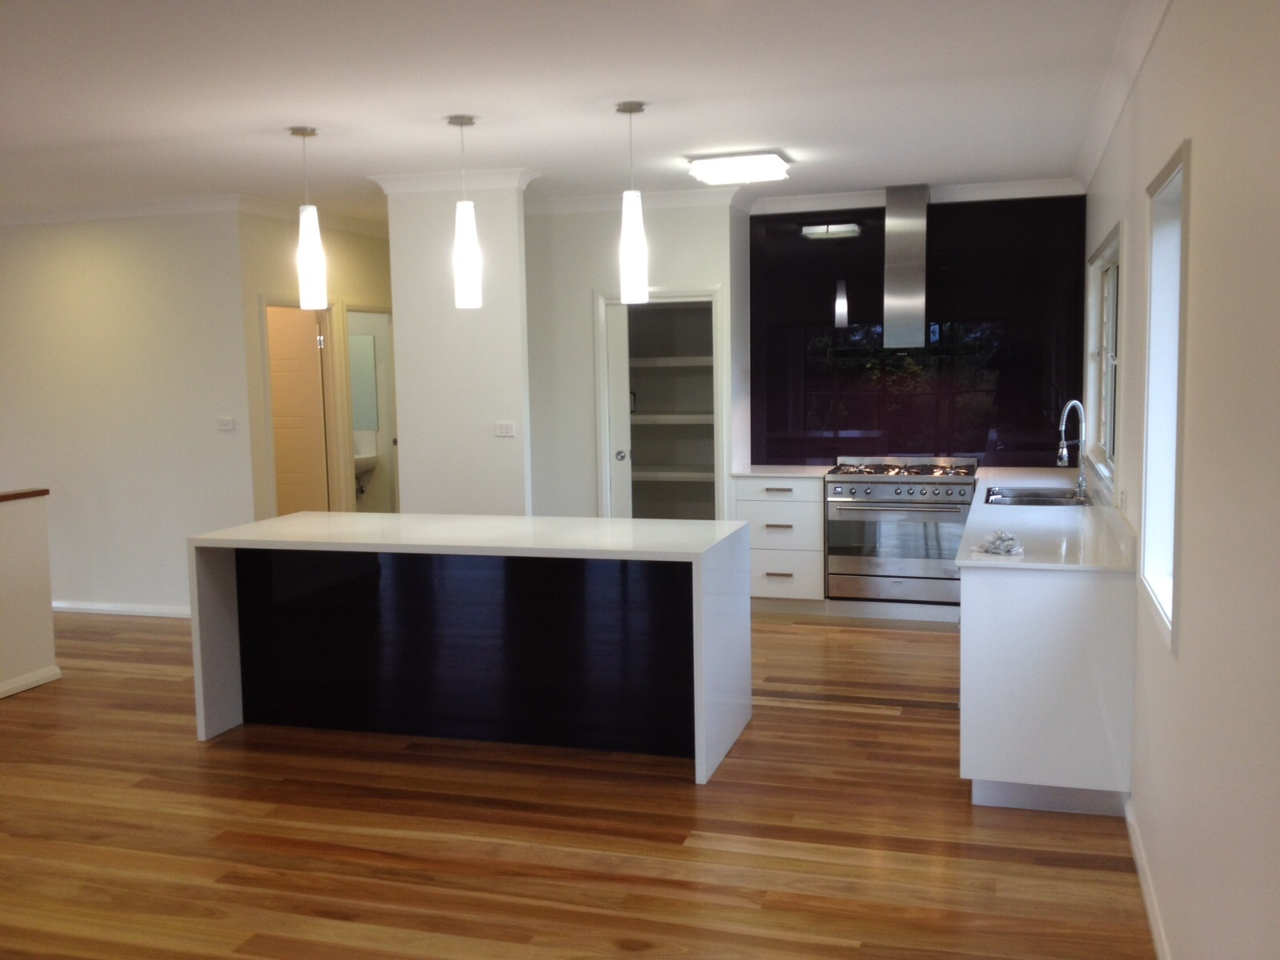 Vegas Living upstairs - Modern Kitchen with Glass Splashbacks.